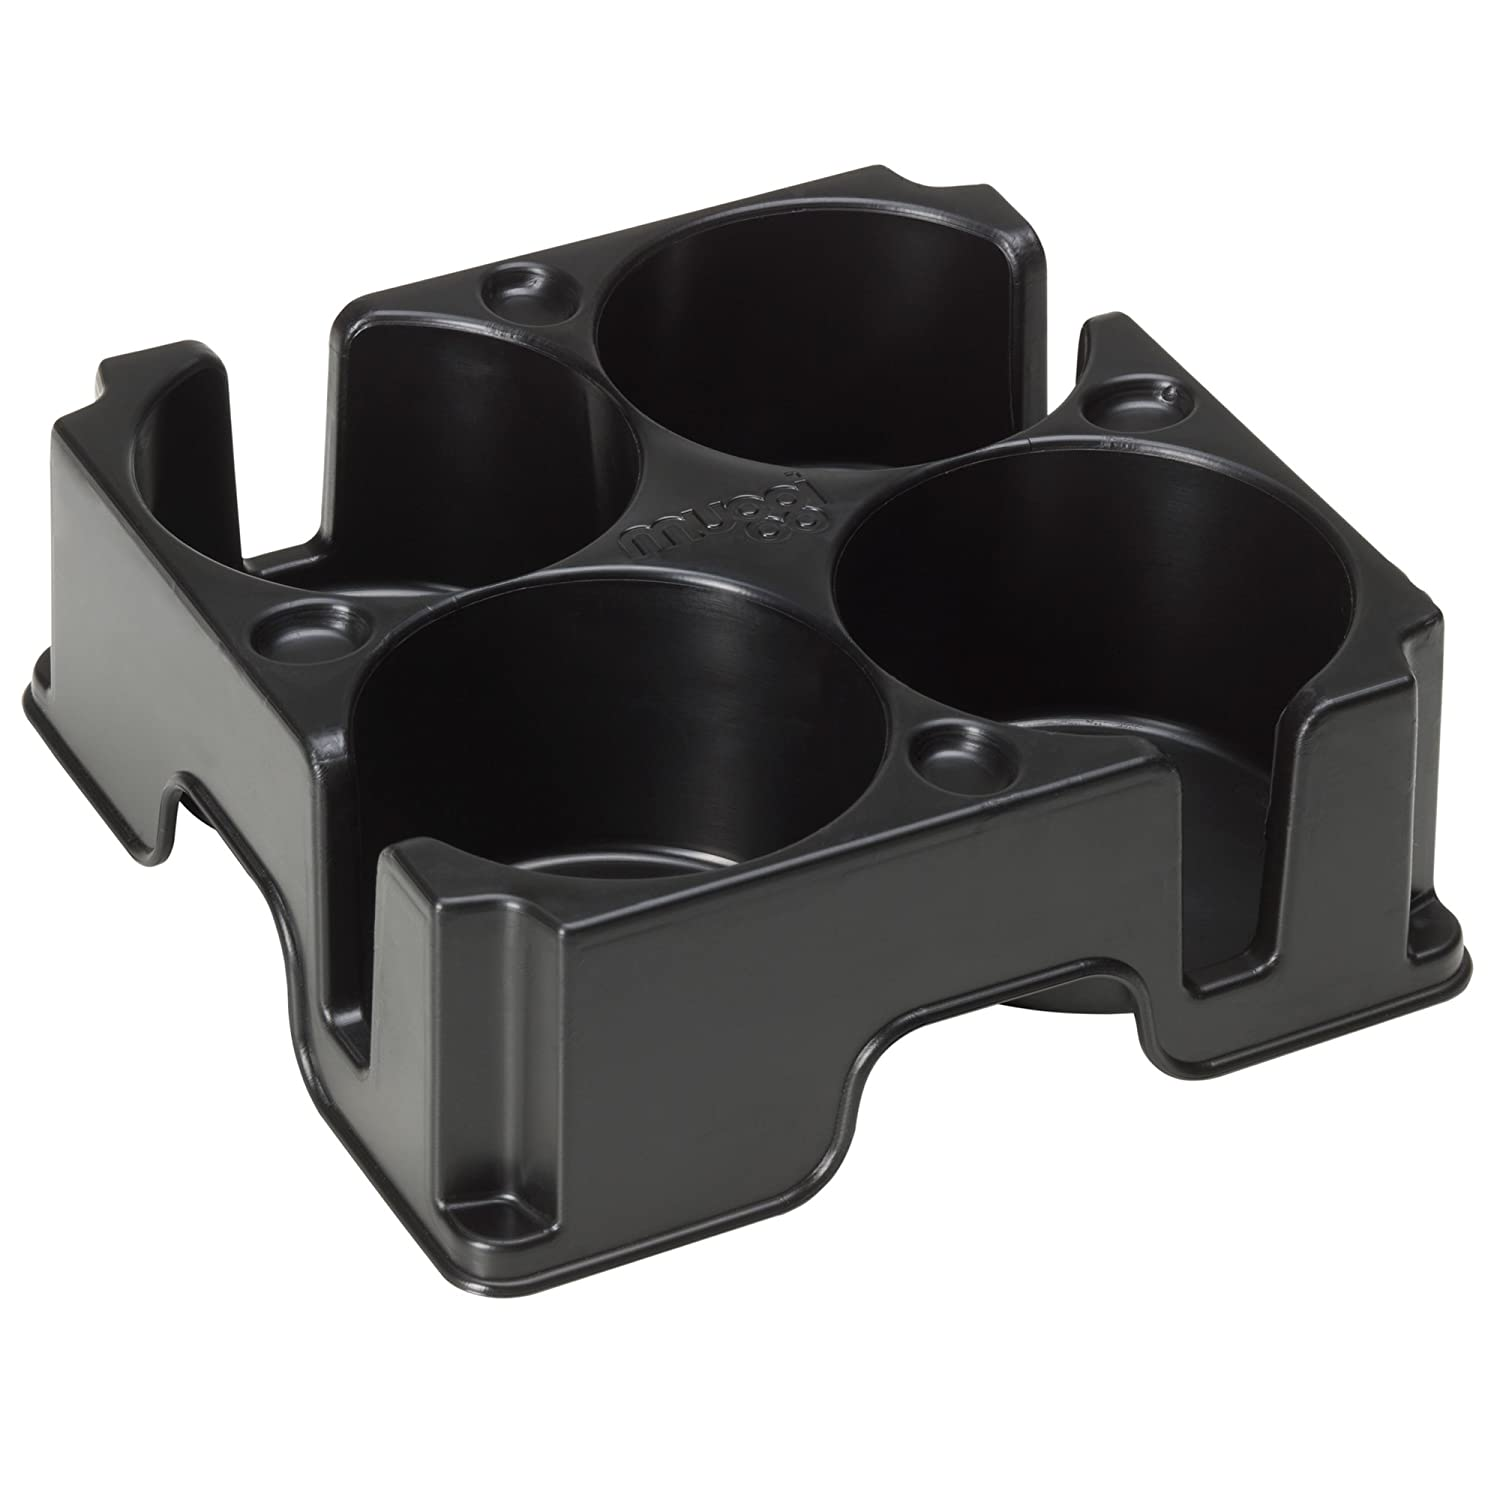 BBTradesales Muggi Multi-Cup Holder, Grey MUGGI-Grey